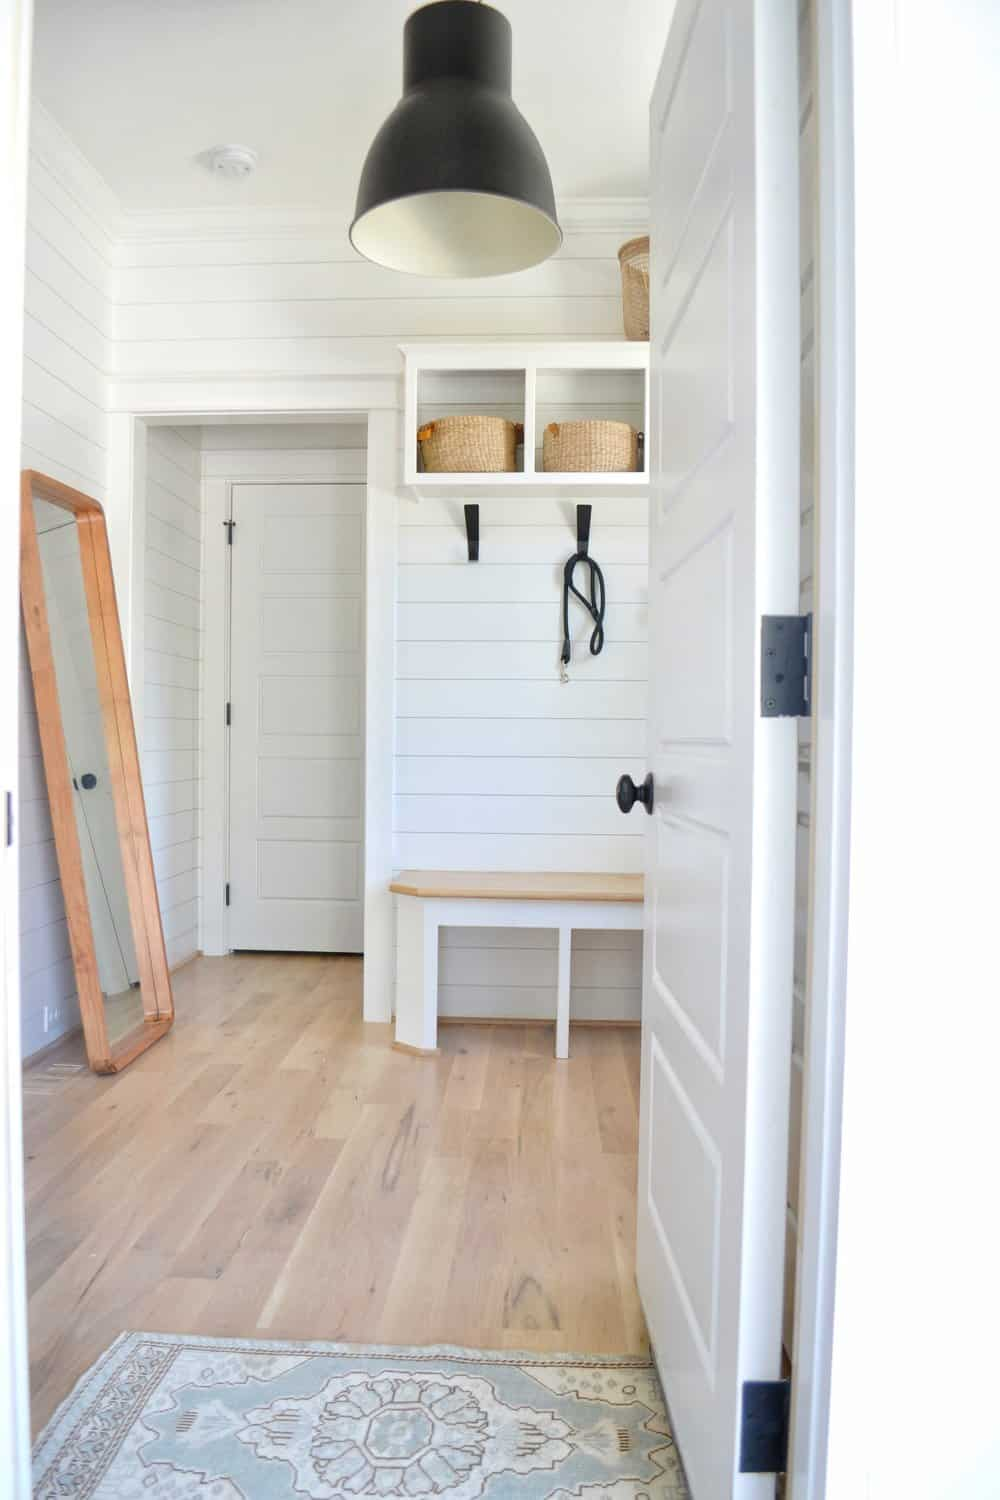 statement lighting in the organized mudroom with shoe organization